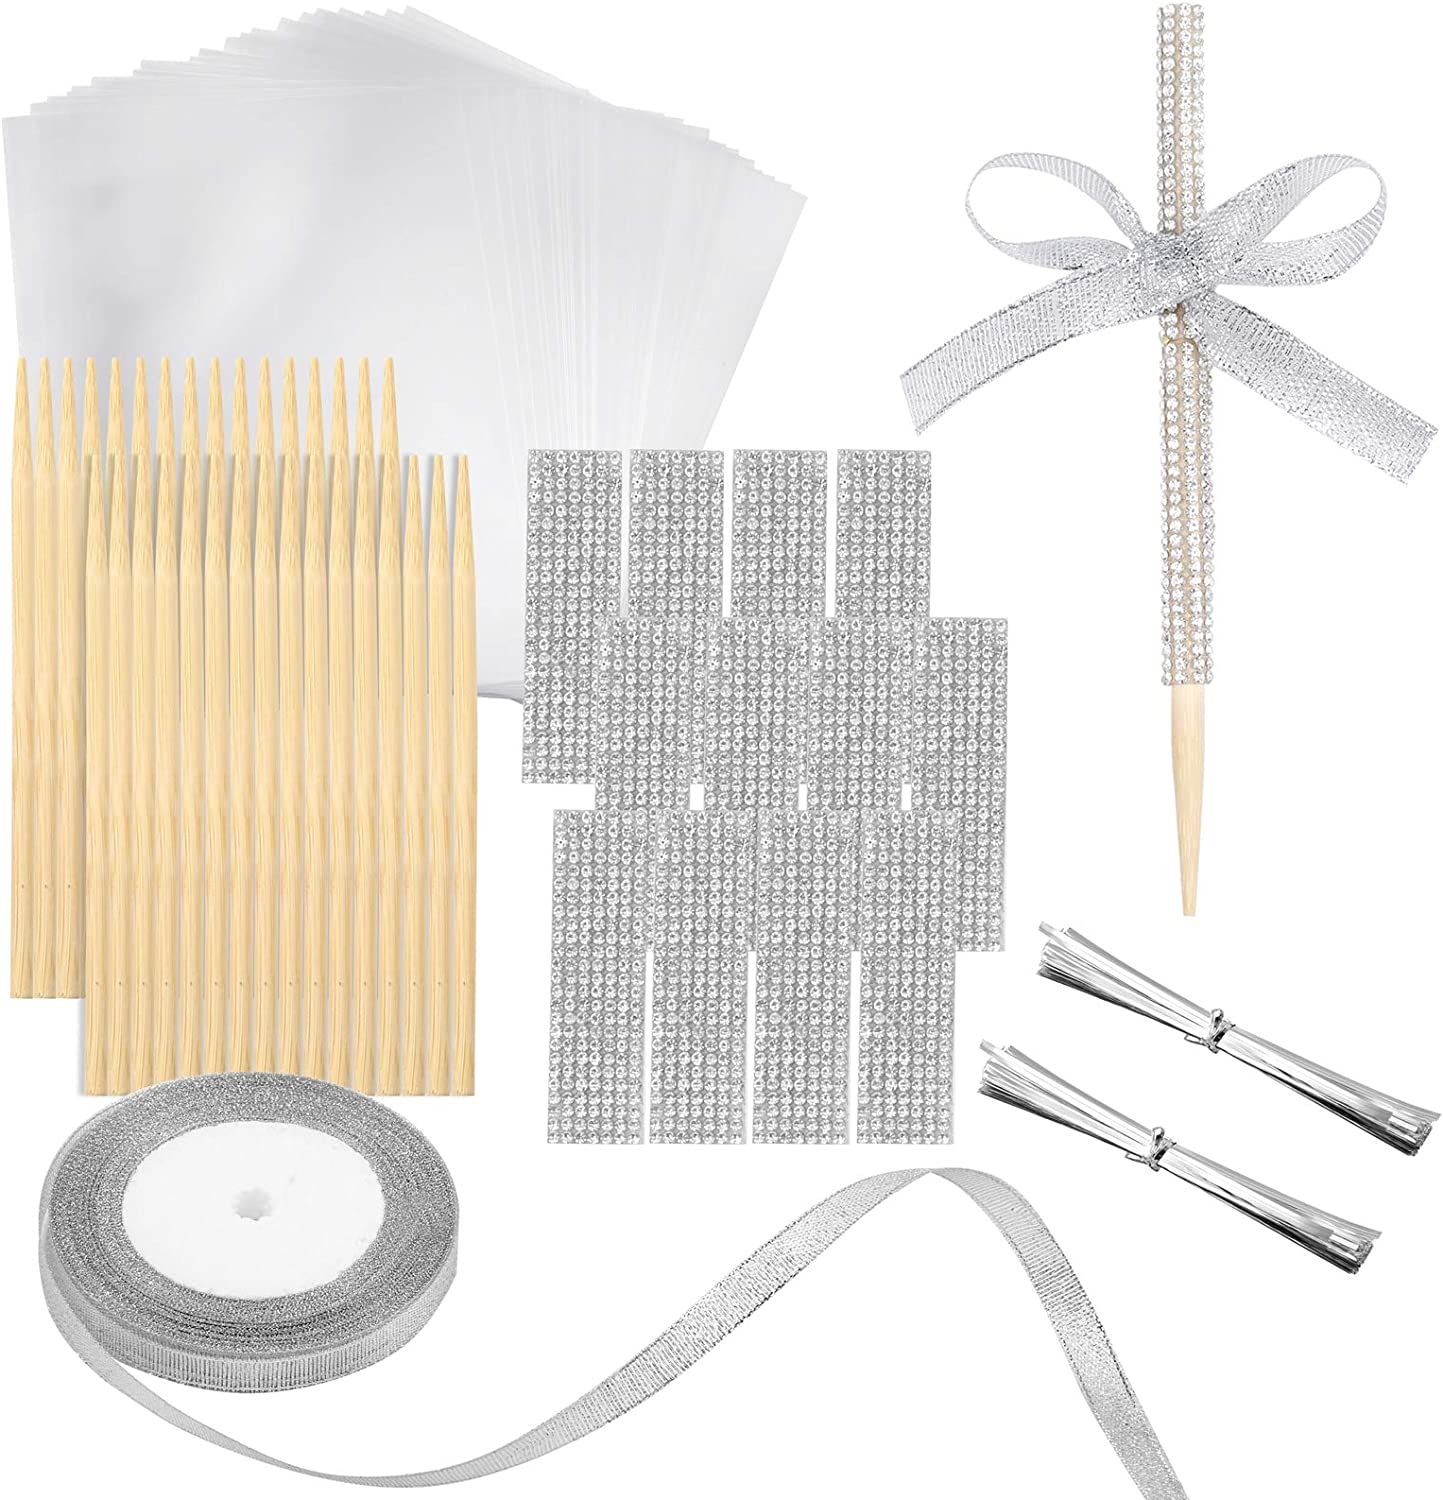 Pllieay 50pcs Bamboo Candy Apple Sticks, Candy Fruit Skewer Sticks with Candy Cellophane Treat Bags, Bling Rhinestone Stickers, Rolls Silver Satin Ribbon and Bundle Metallic Silver Twist Ties